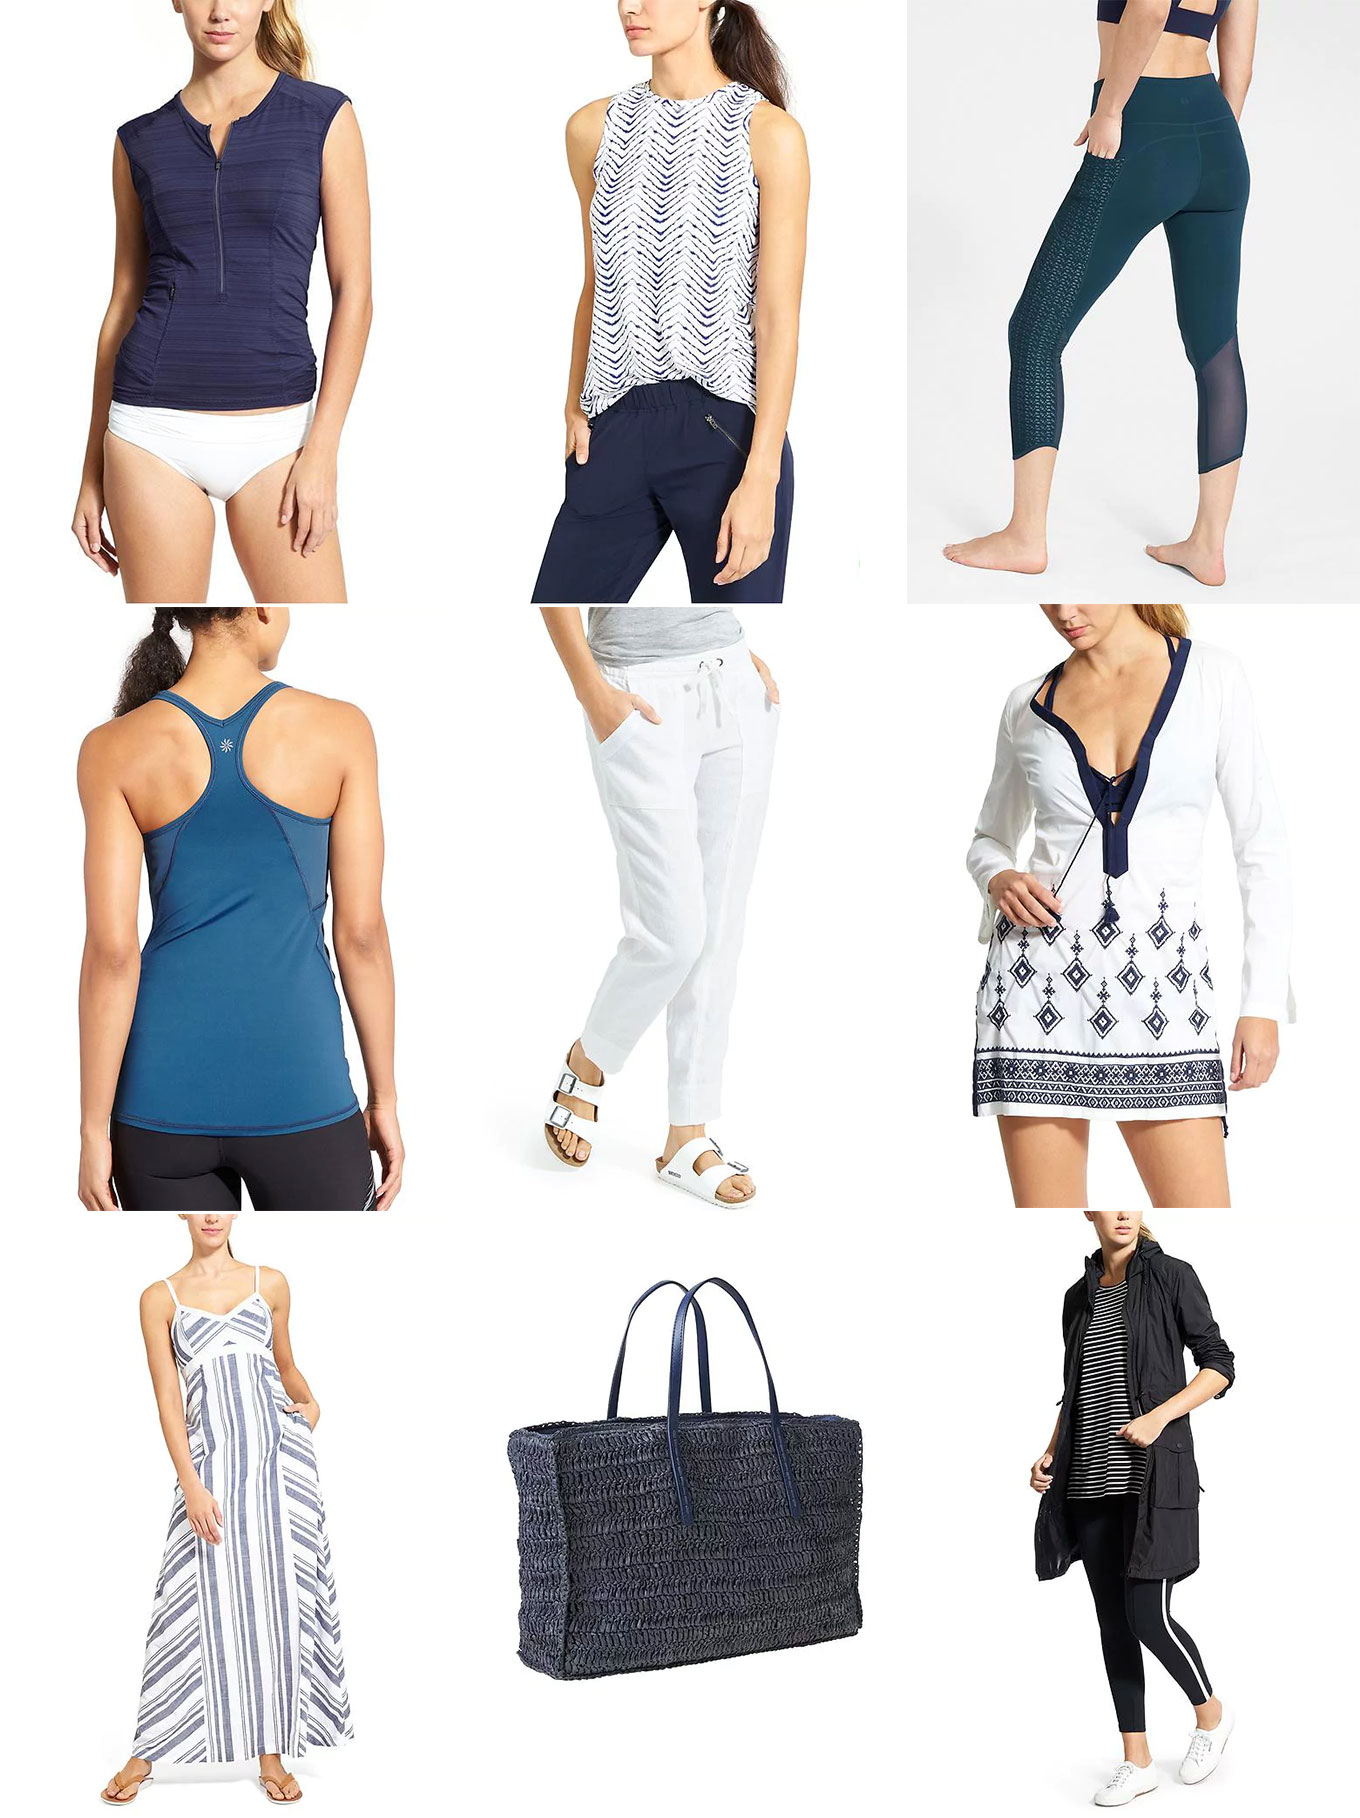 Ridgely Brode is stocking up her favorites items from the Athleta sale and sharing them on her blog, Ridgely's Radar.